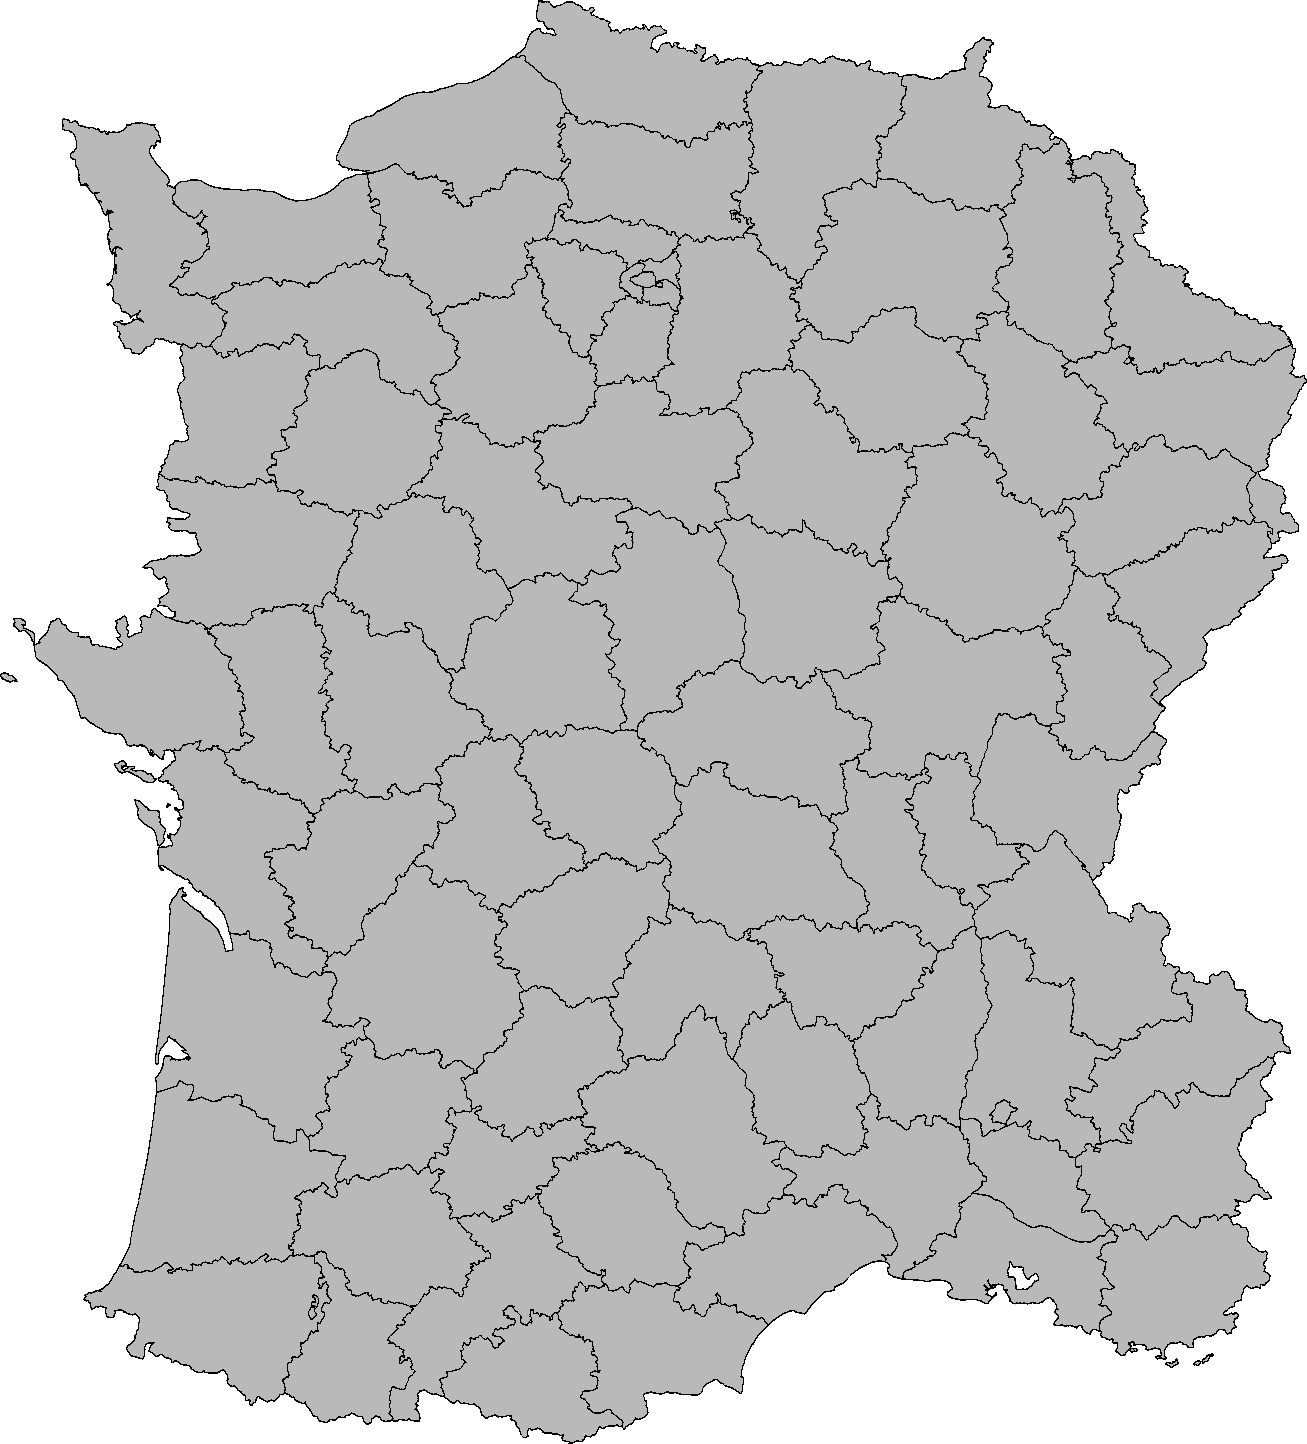 Image Blank Map Of France With Departments Imperial Machines - France map images blank